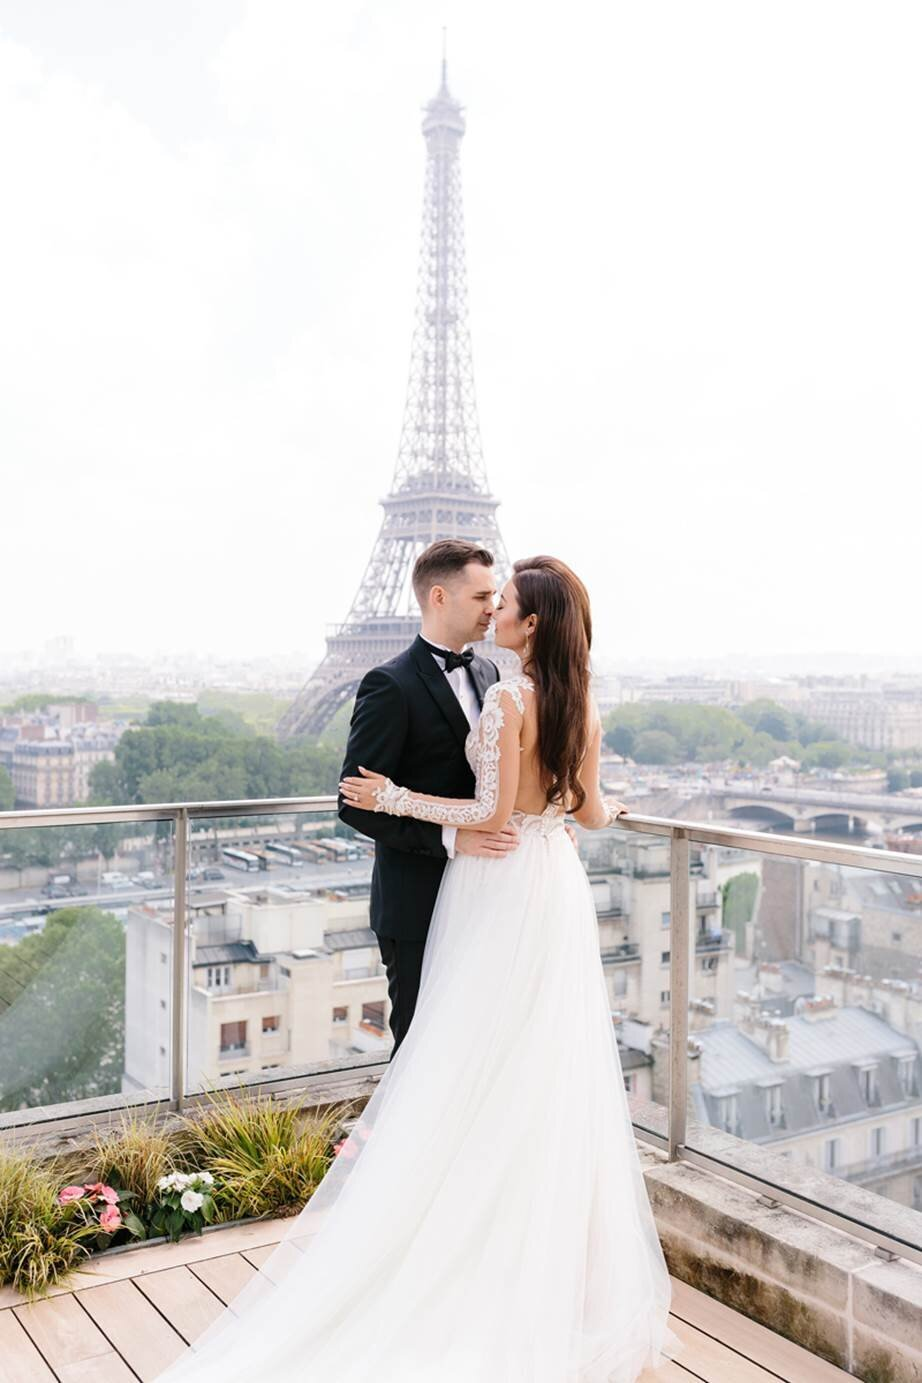 Trine_Juel_hair_makeupartist_wedding_Paris33269994801_17